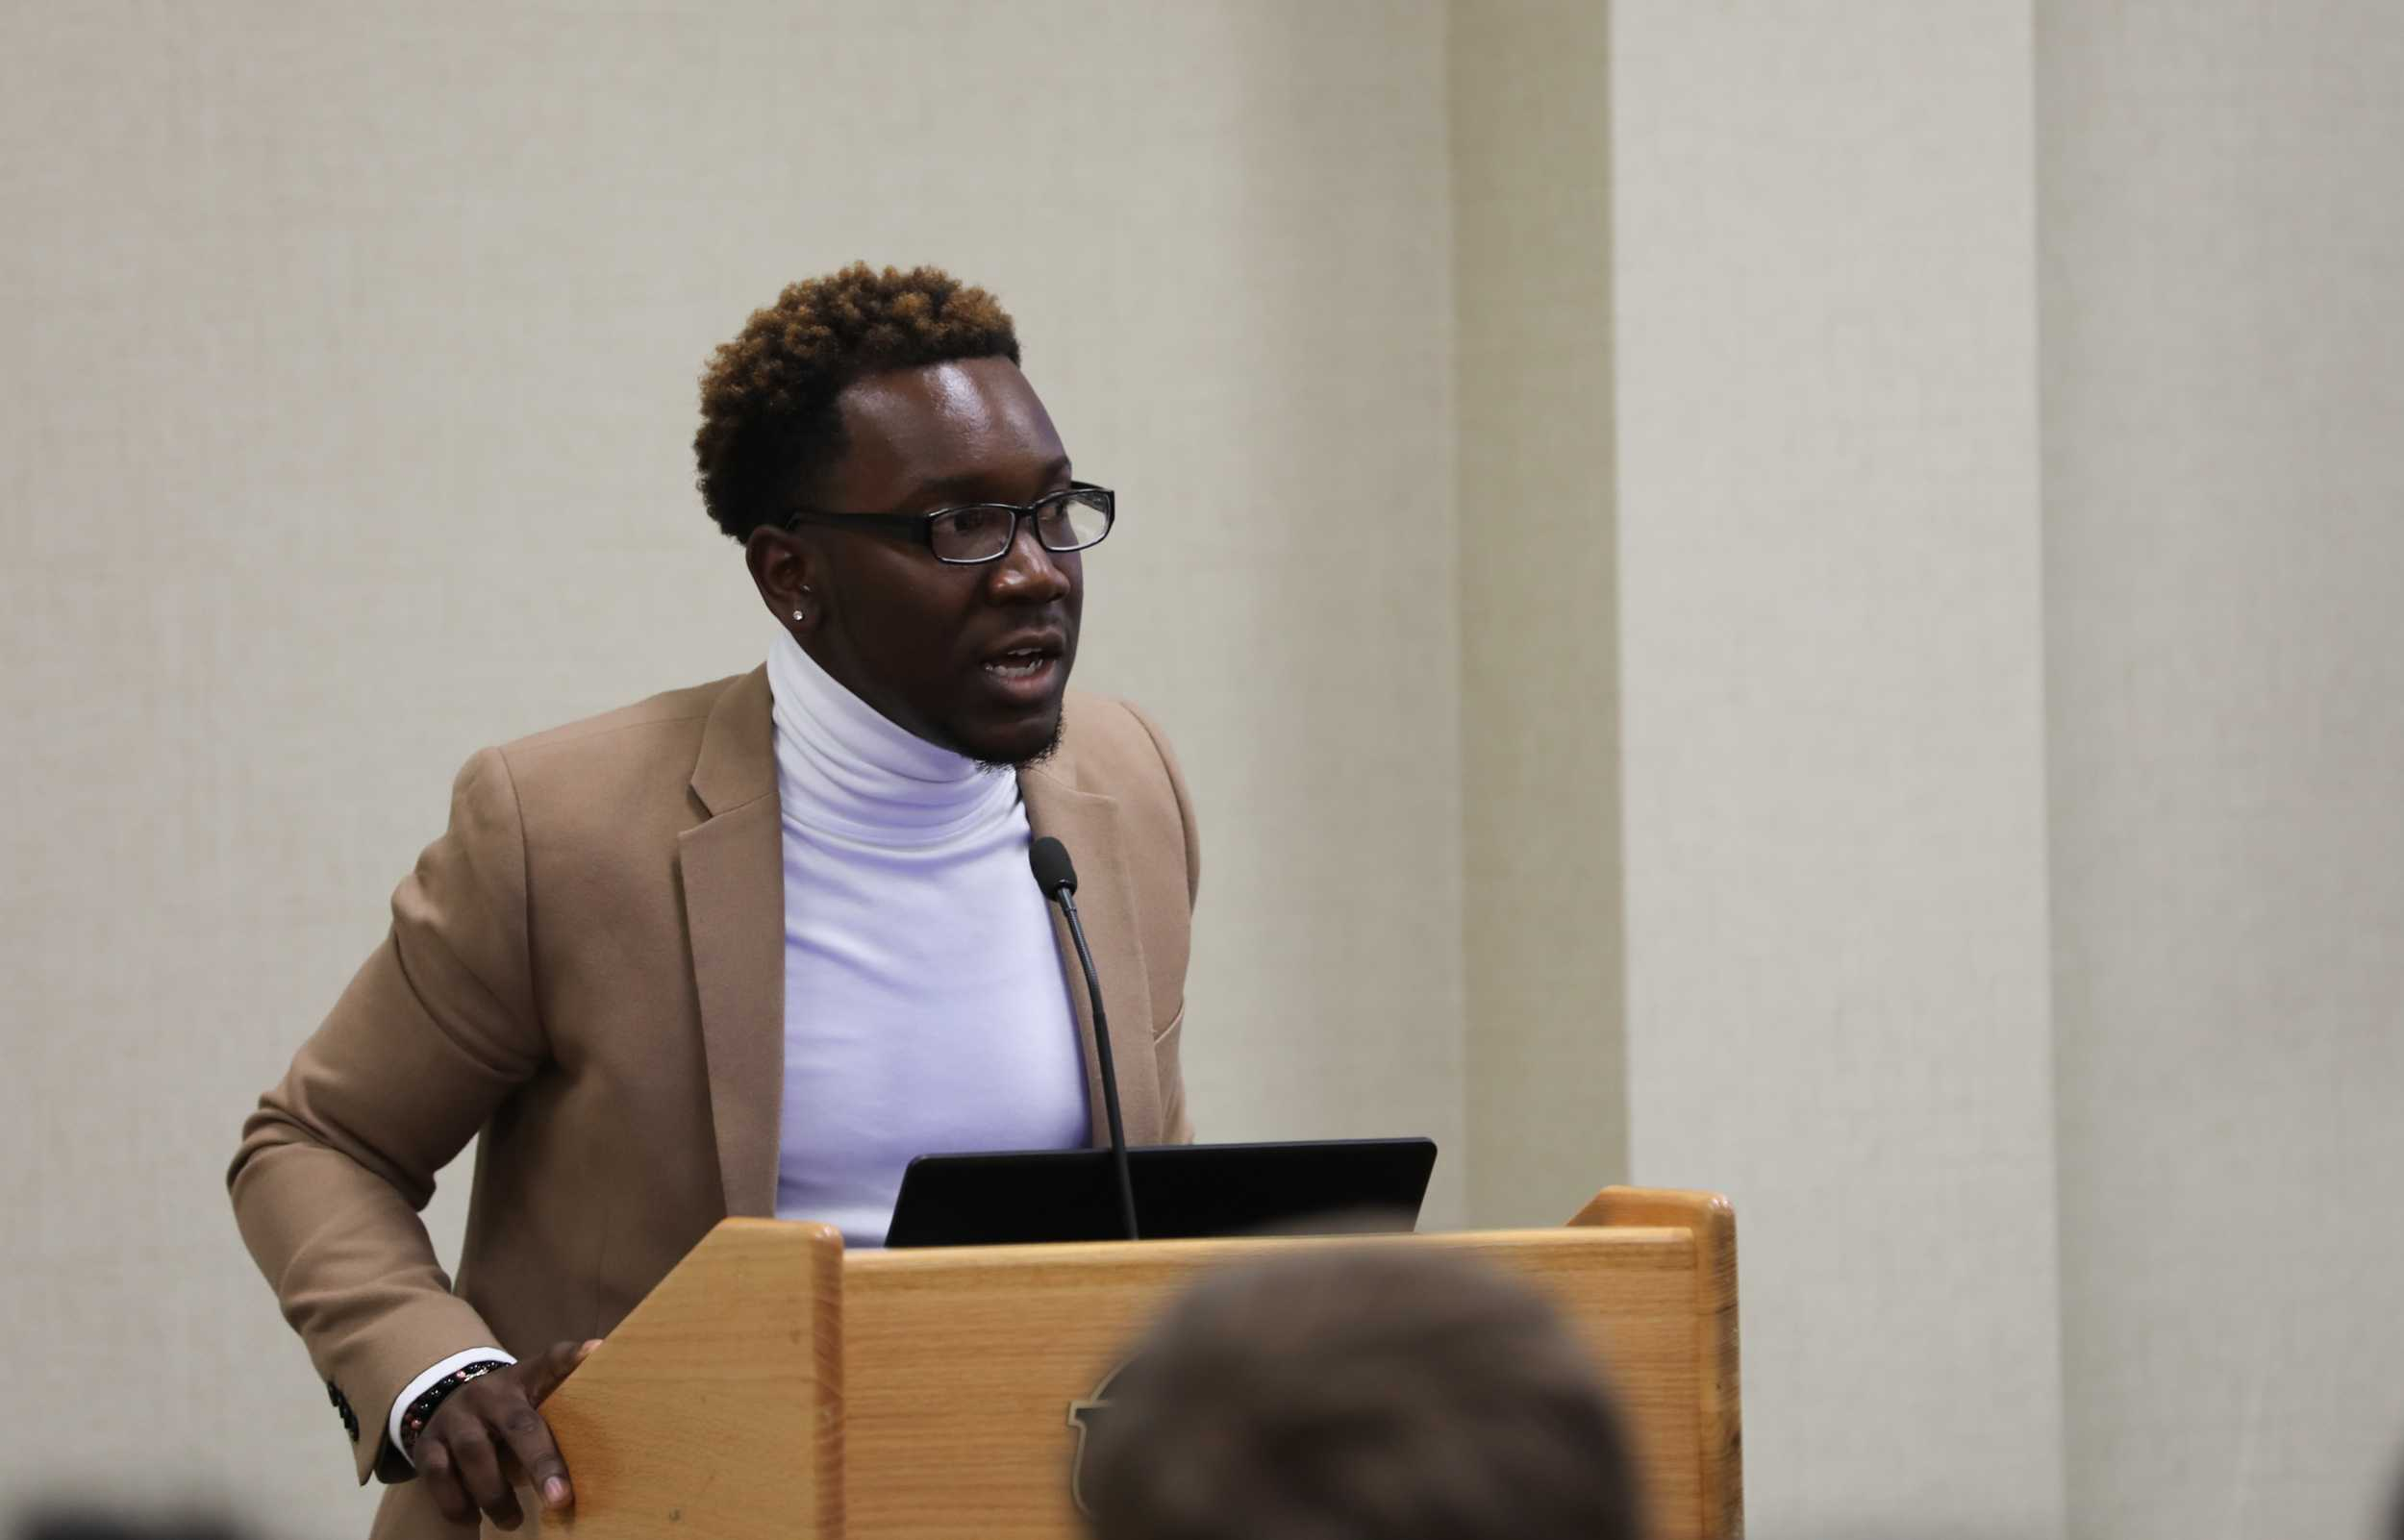 Student body president Joseph Shepard addresses the crowd during the open forum portion of the student fees hearing. (Mar. 1, 2017)